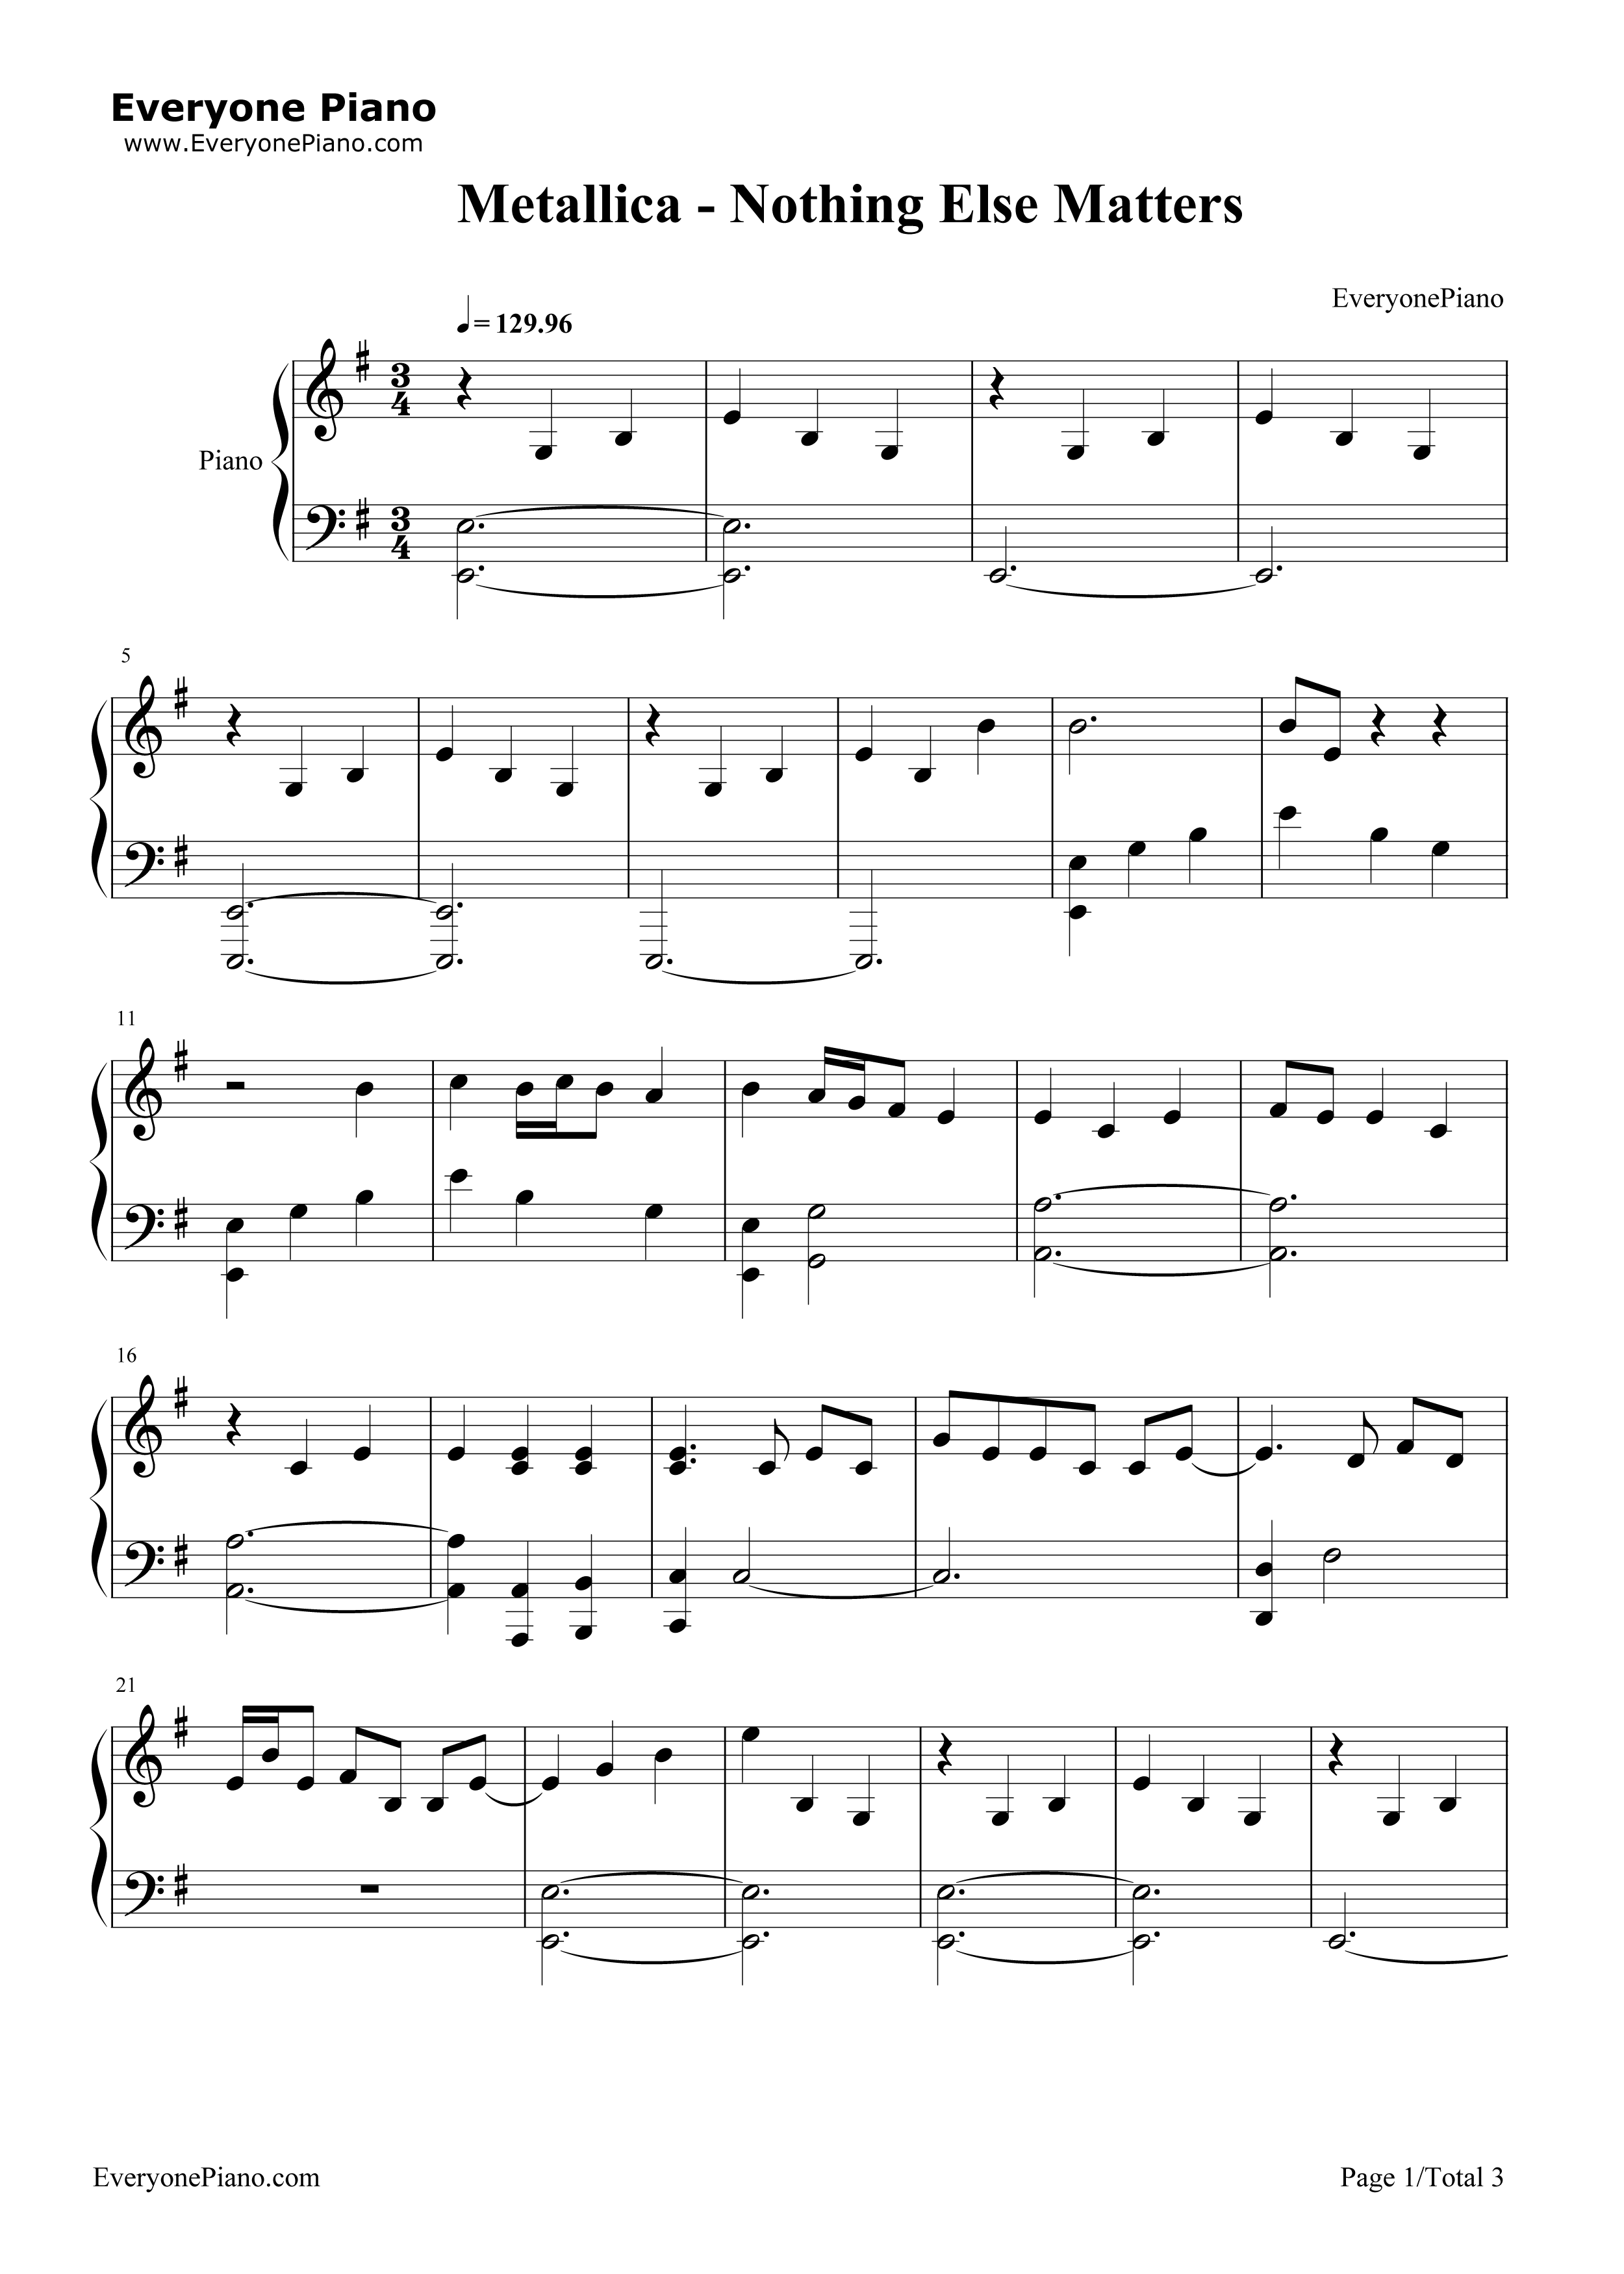 Nothing else matters metallica stave preview 1 free piano sheet listen now print sheet nothing else matters metallica stave preview 1 hexwebz Image collections